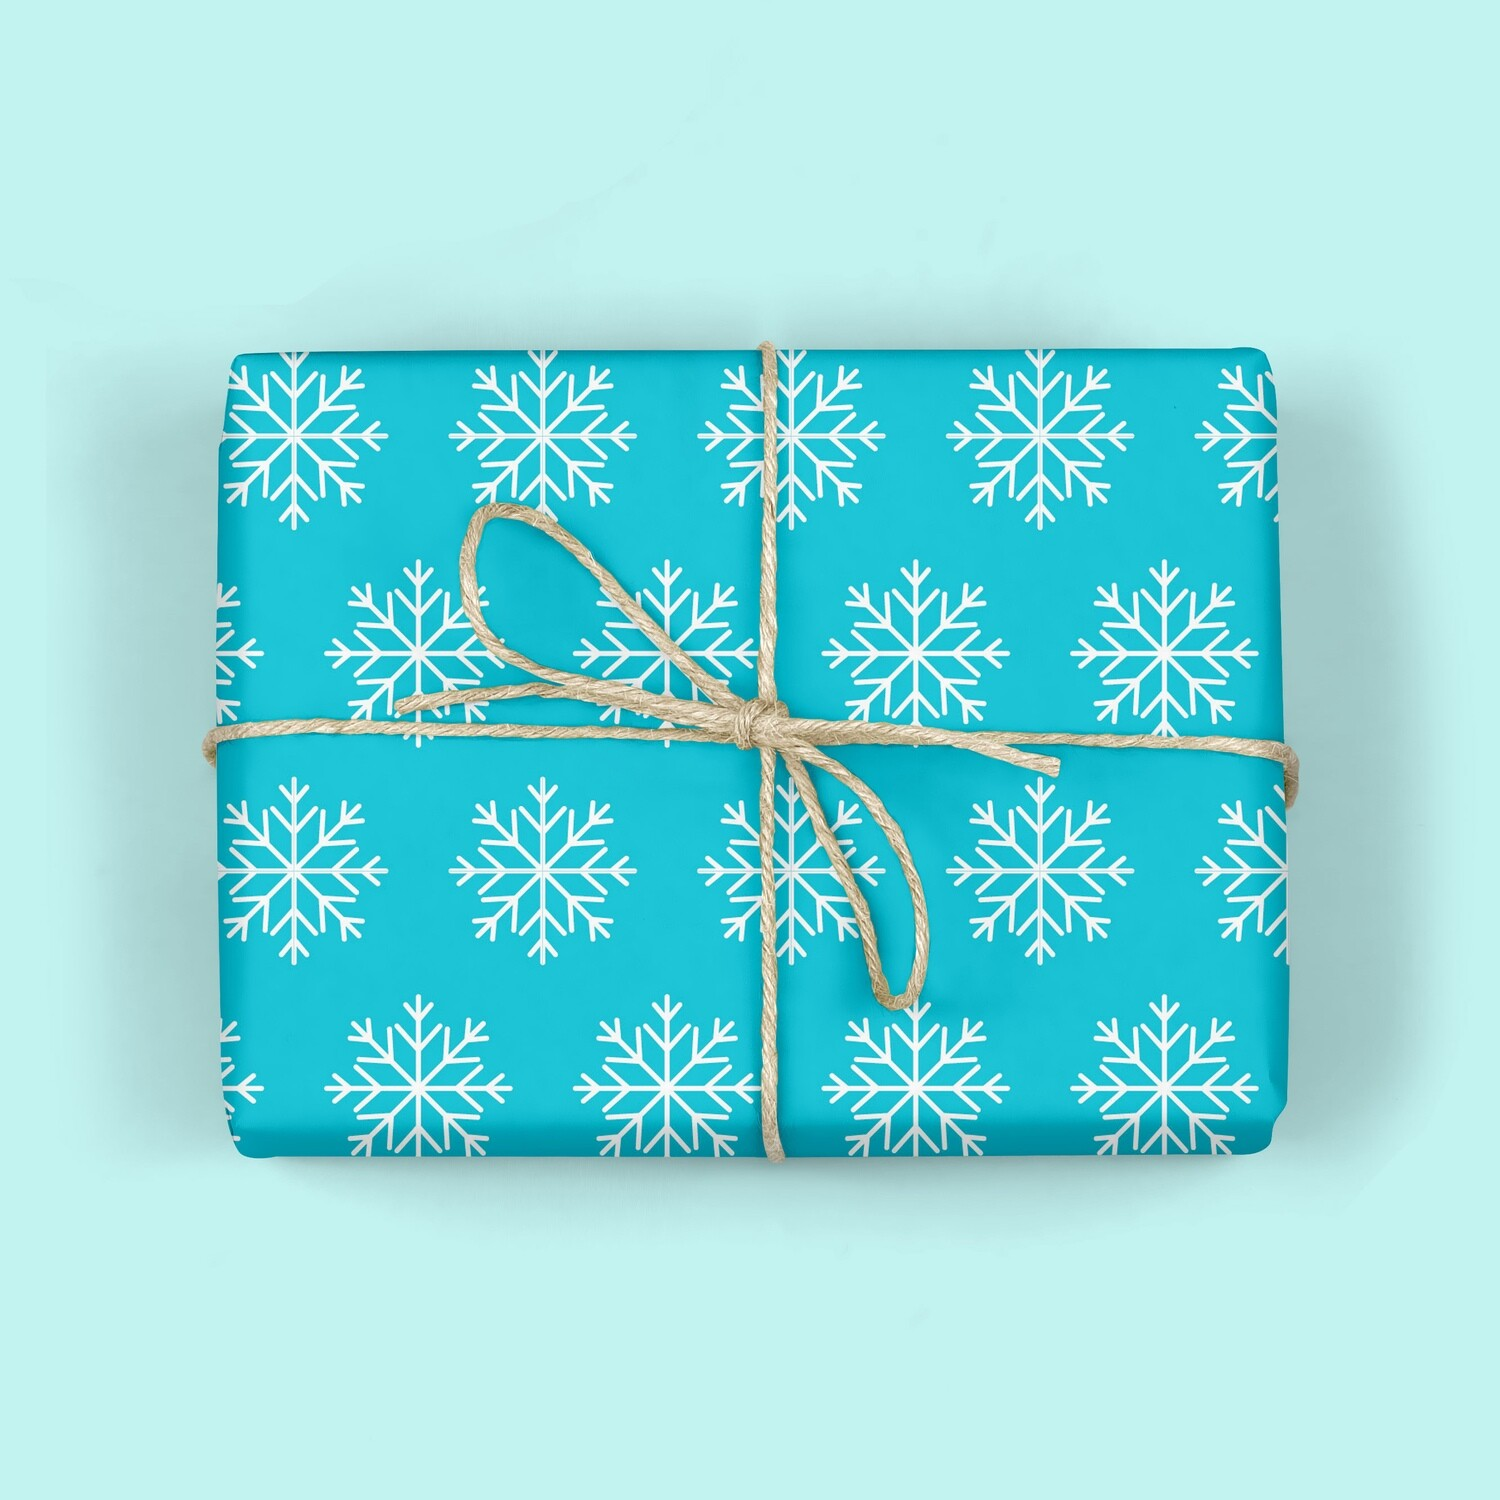 Best Christmas Gifts For Her 2019: The Best Holiday Gifts Of 2019